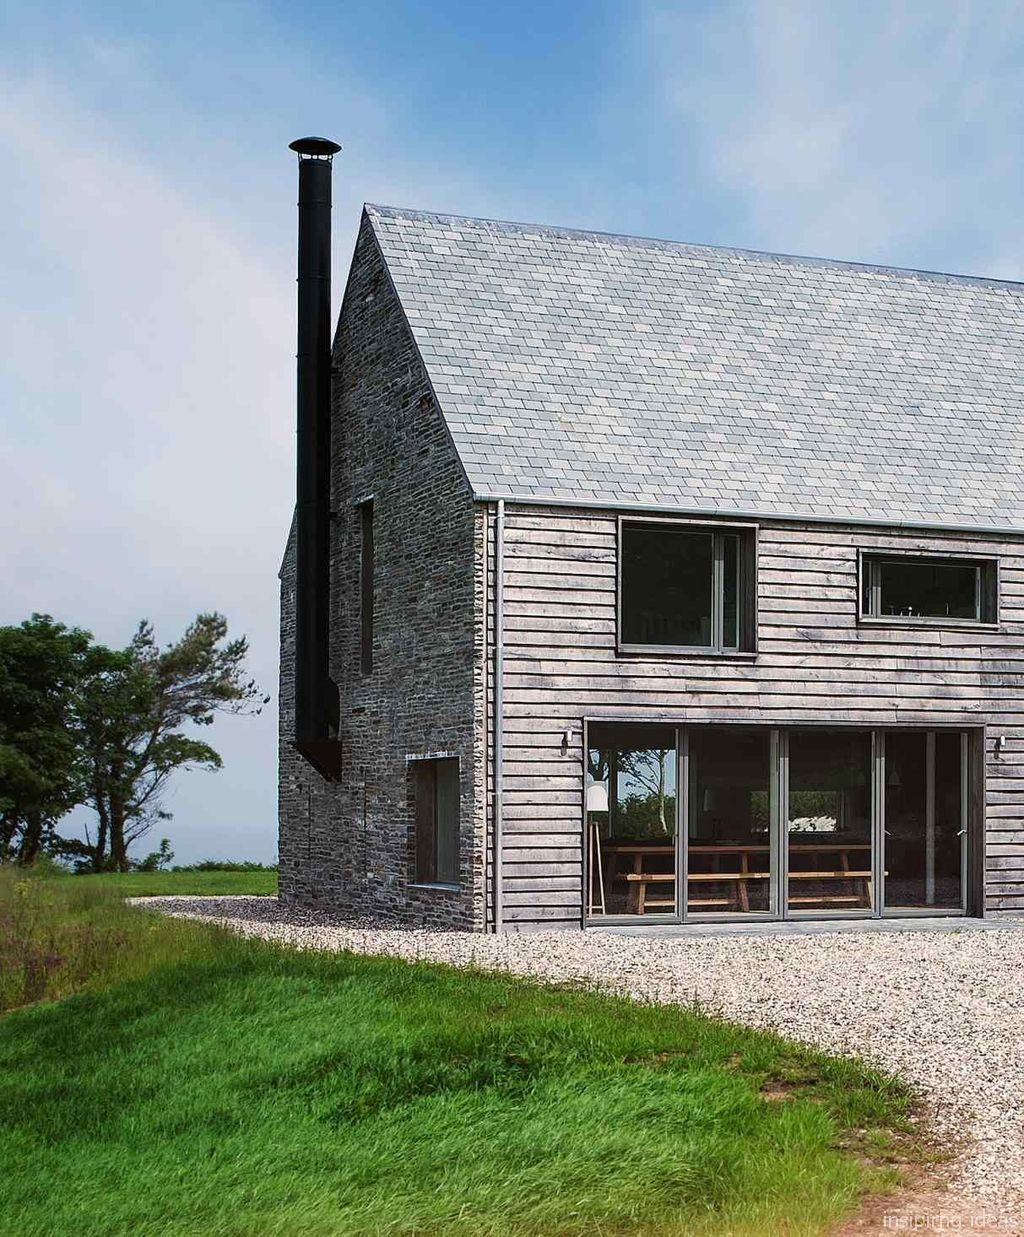 45 Inspiring Small Modern Farmhouse Exterior Design Ideas - augustexture.com